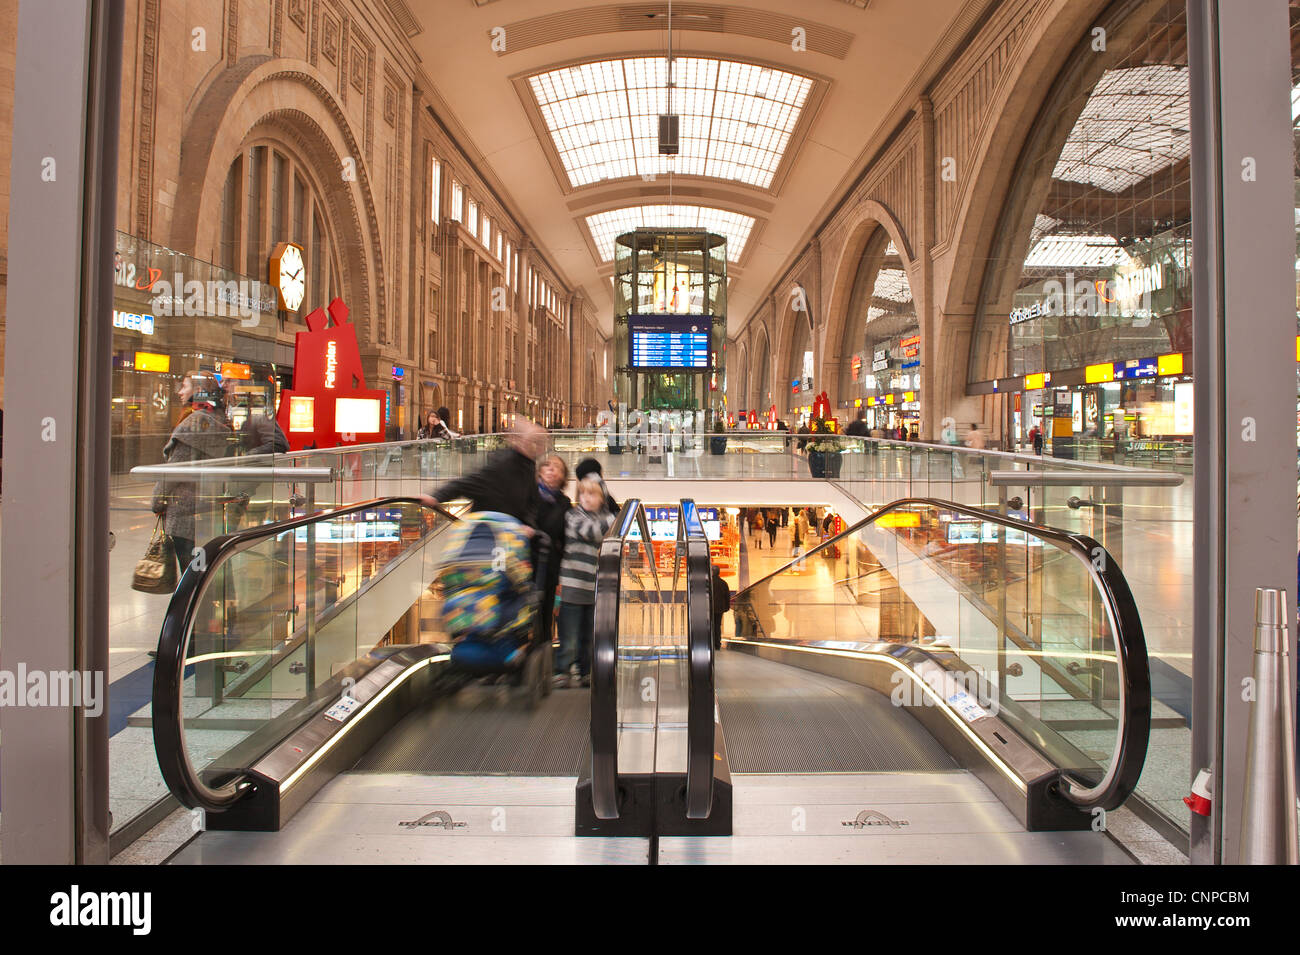 Leipzig Straßenbahn Fahrplan Railway Station Leipzig Germany Stock Photo 47821192 Alamy